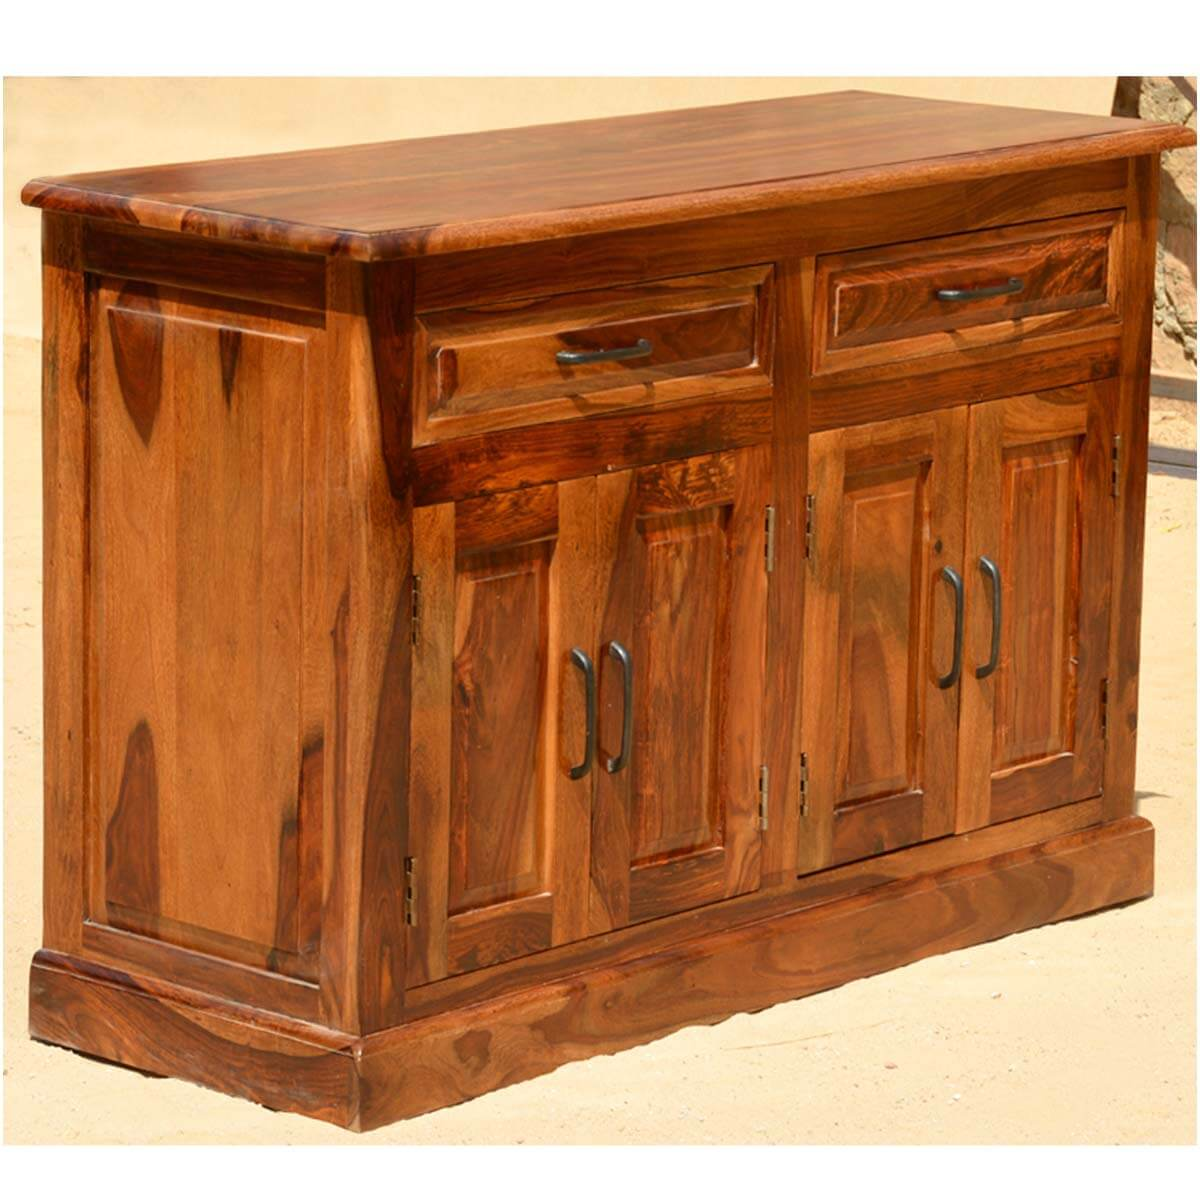 Dining Table And Buffet Set: Camelot 13p Solid Wood Dining Set Buffet Breakfront Table